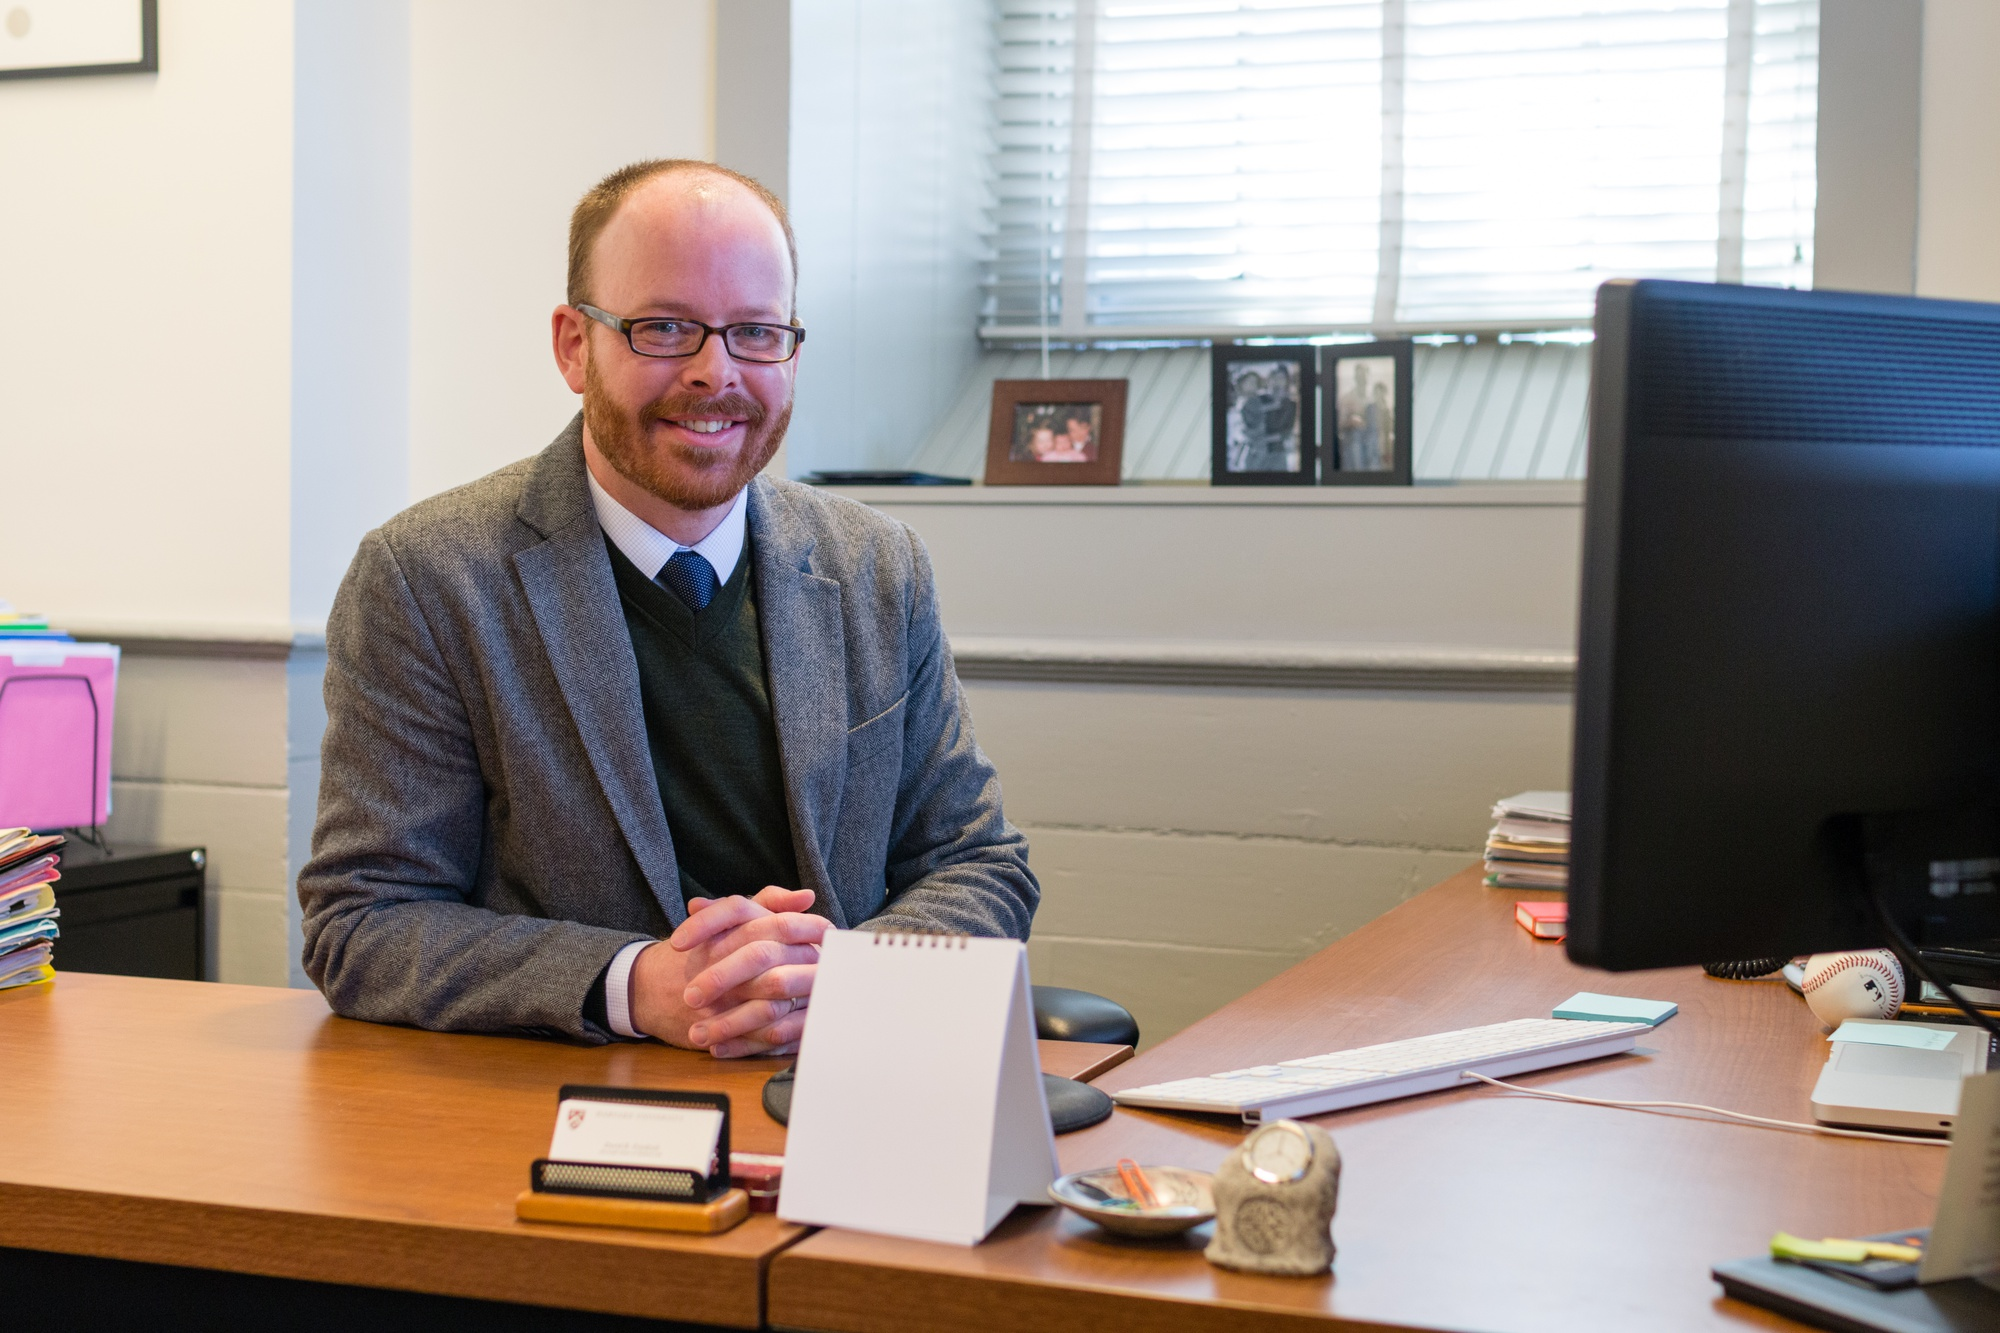 Associate Dean of Student Life David R. Friedrich poses for a photo in his office in University Hall.